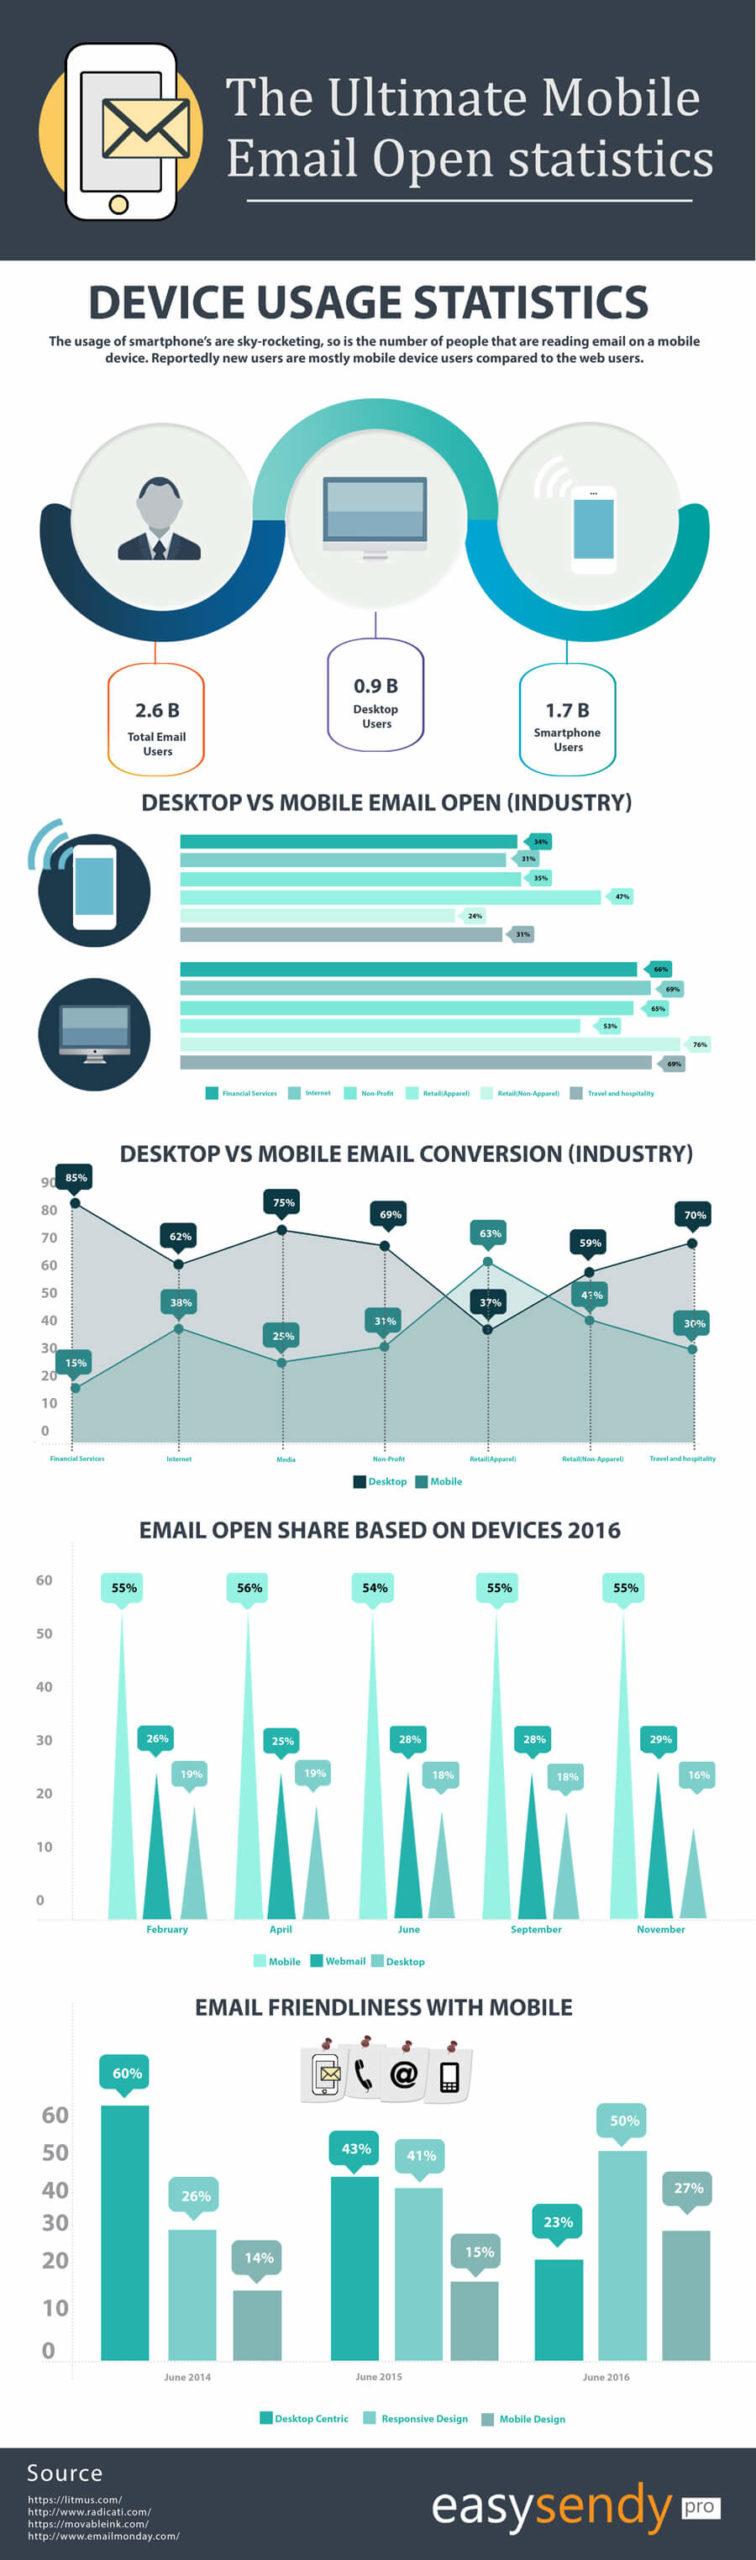 Infographic Mobile Email Open Statistics